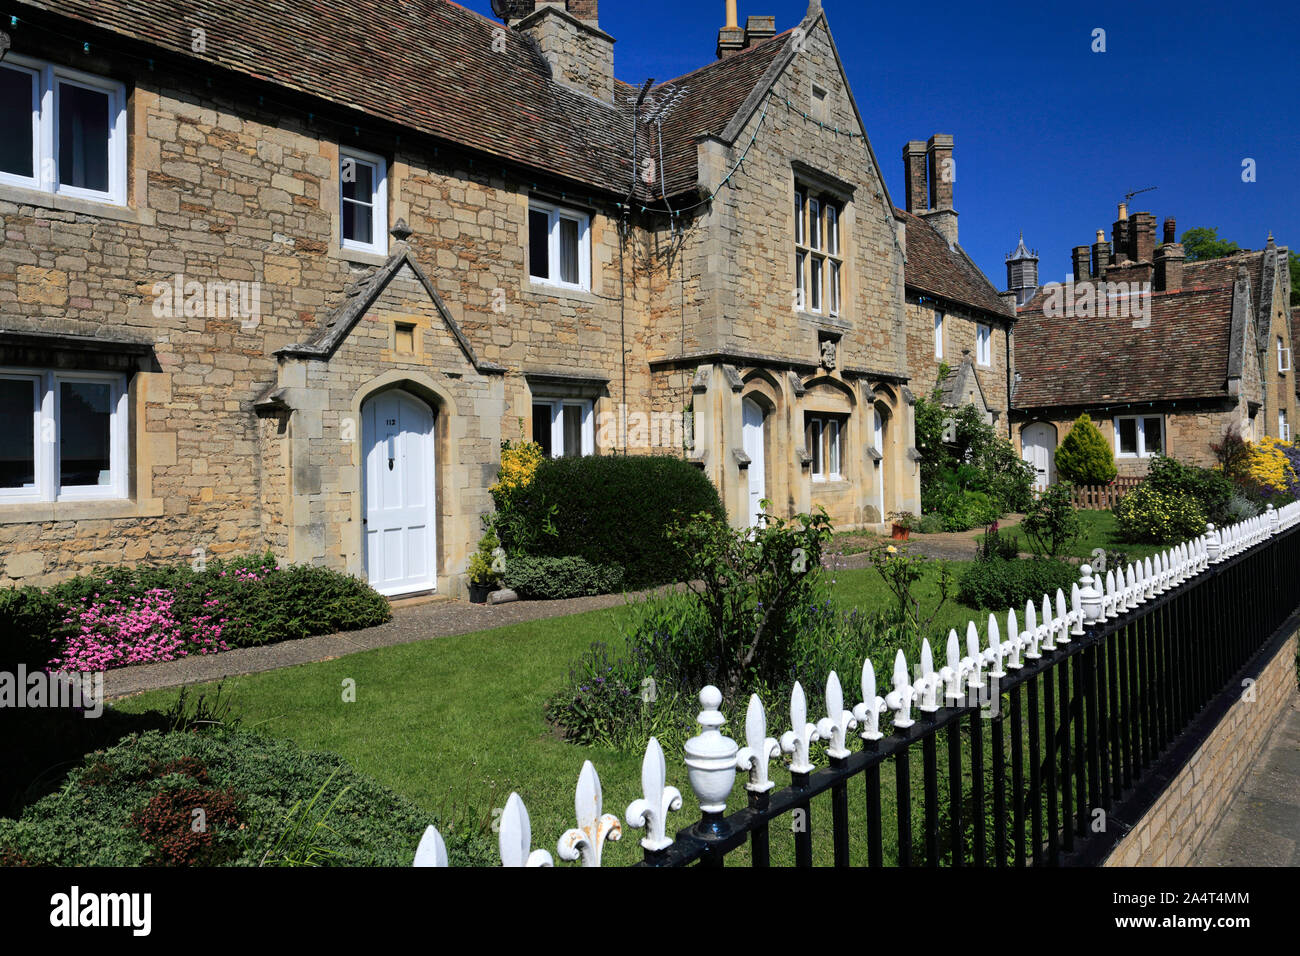 Traditional stone cottages in Ramsey town, Cambridgeshire England UK Stock Photo